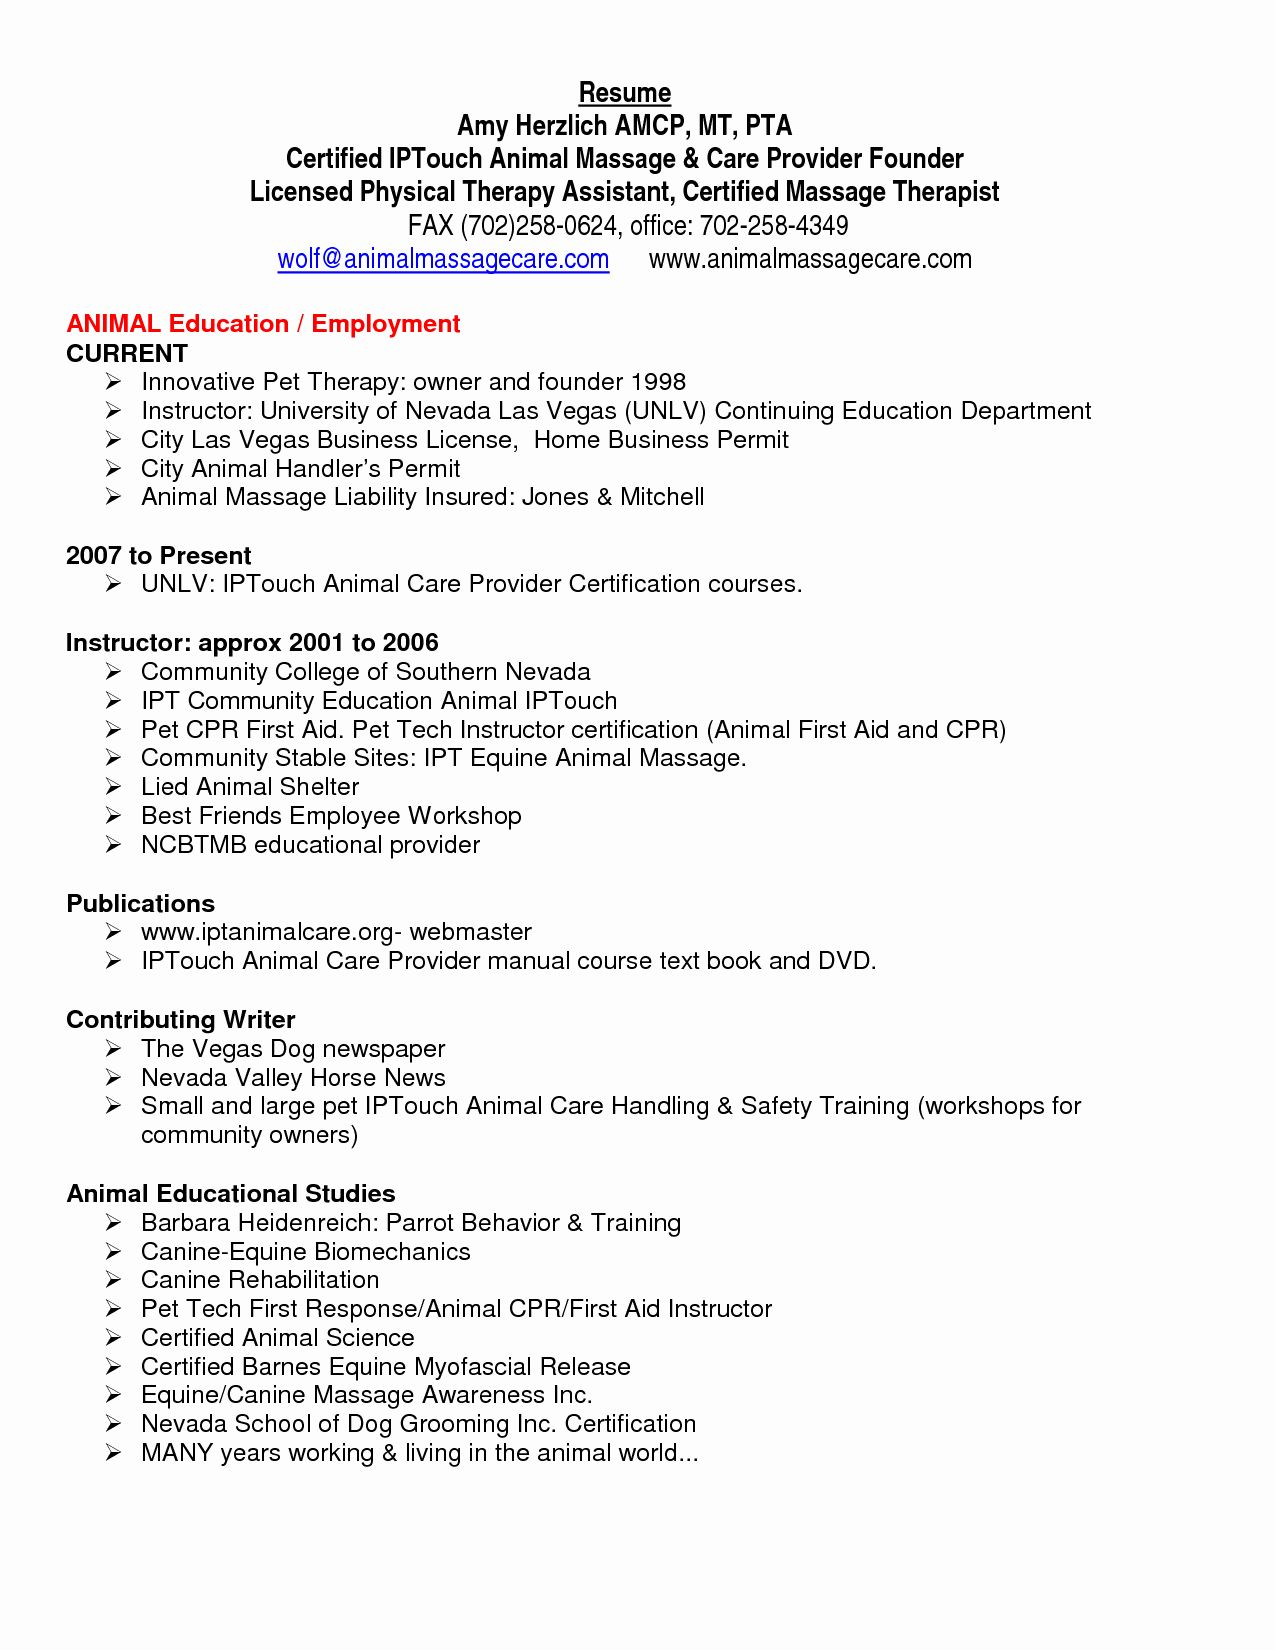 25 Physical therapy Student Resume in 2020 Physical